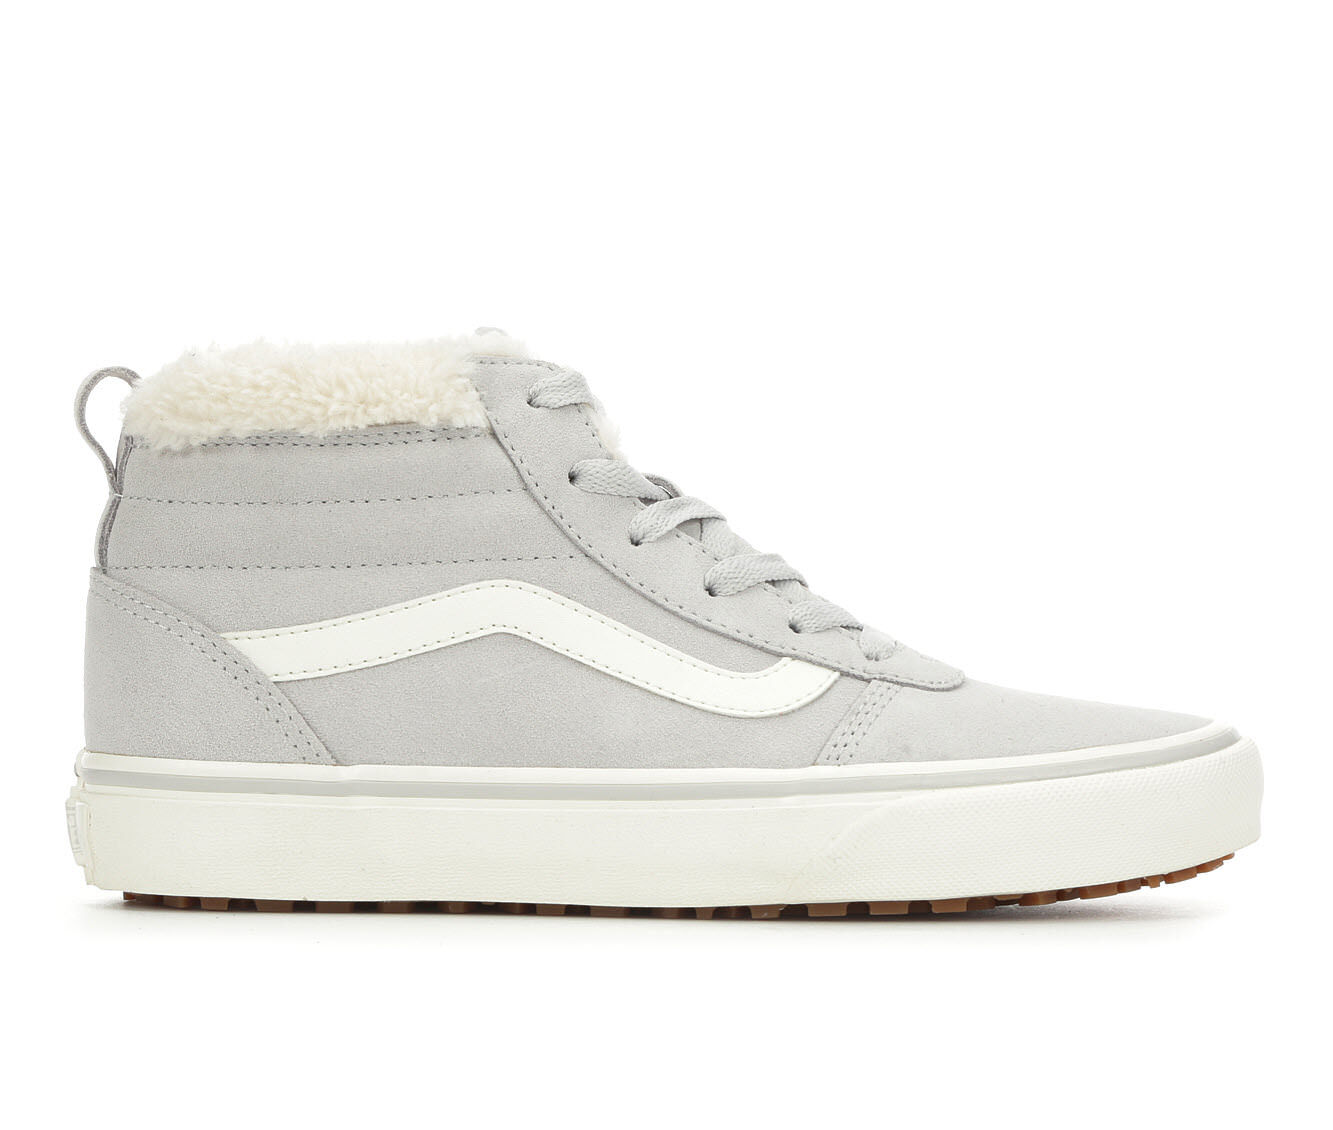 Women's Vans Ward Hi MTE Skate Shoes Antarctica/Wht